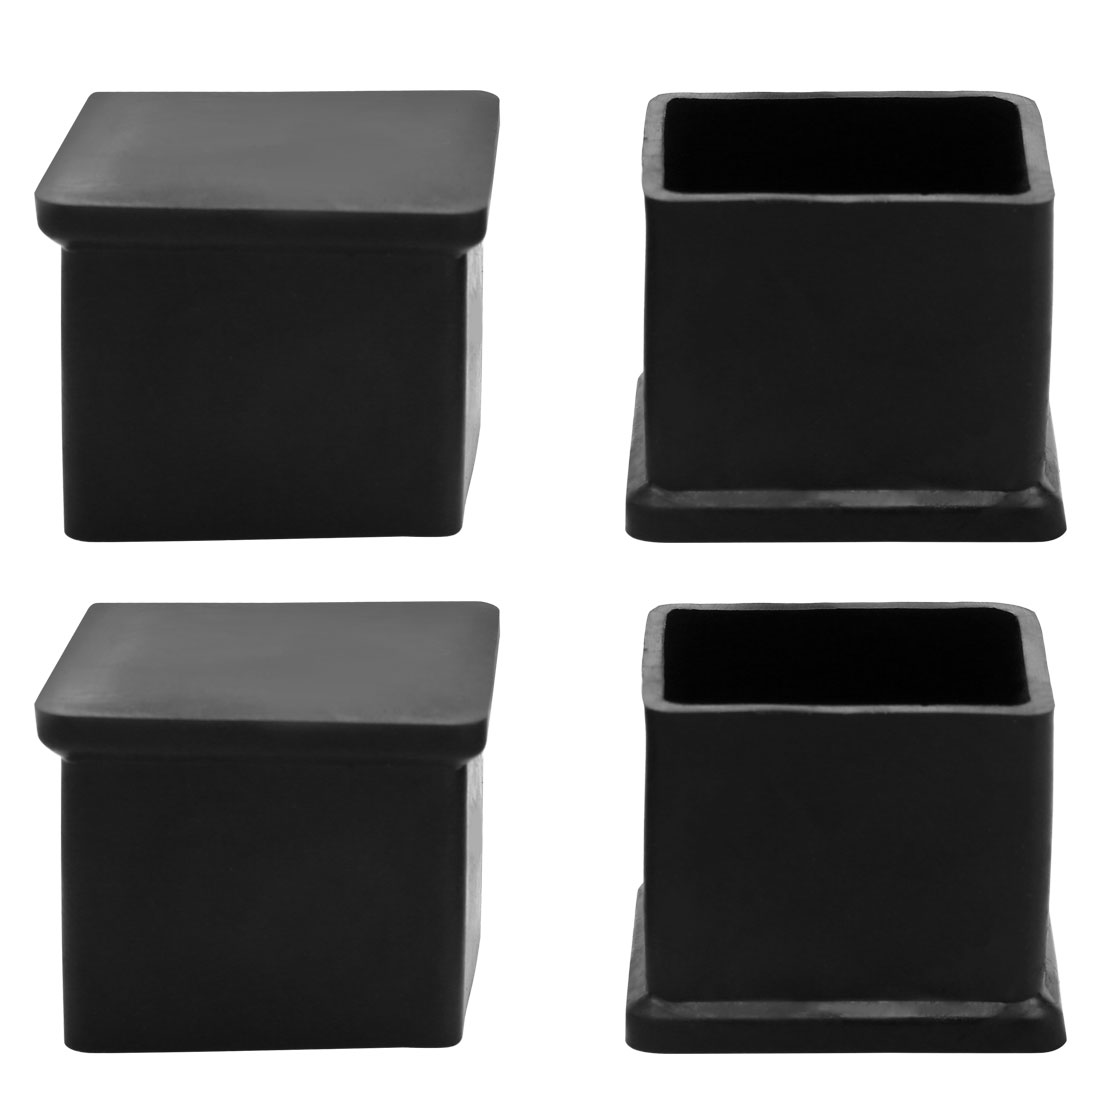 4 Pcs 25mm x 25mm Nonslip Table Furniture Foot Covers Black